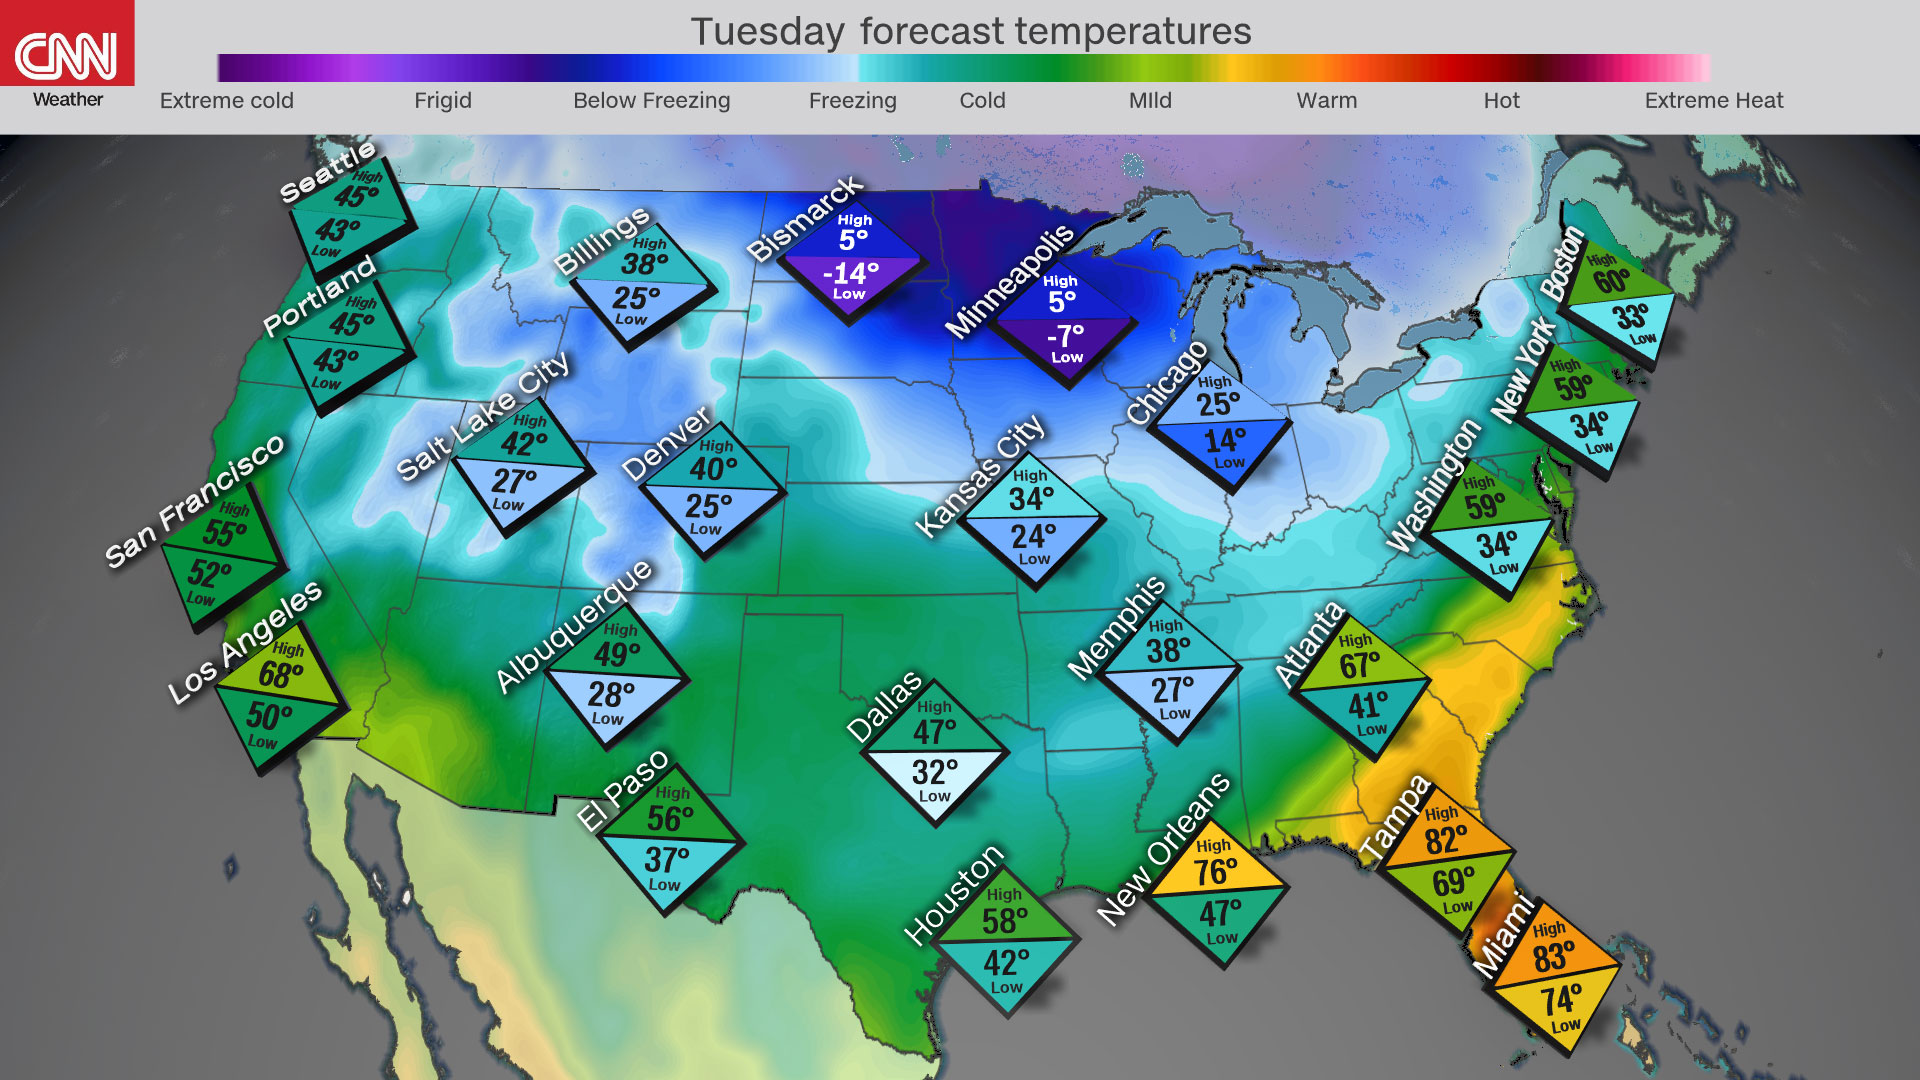 Nearly 65% of the US will feel below-freezing temperatures this week